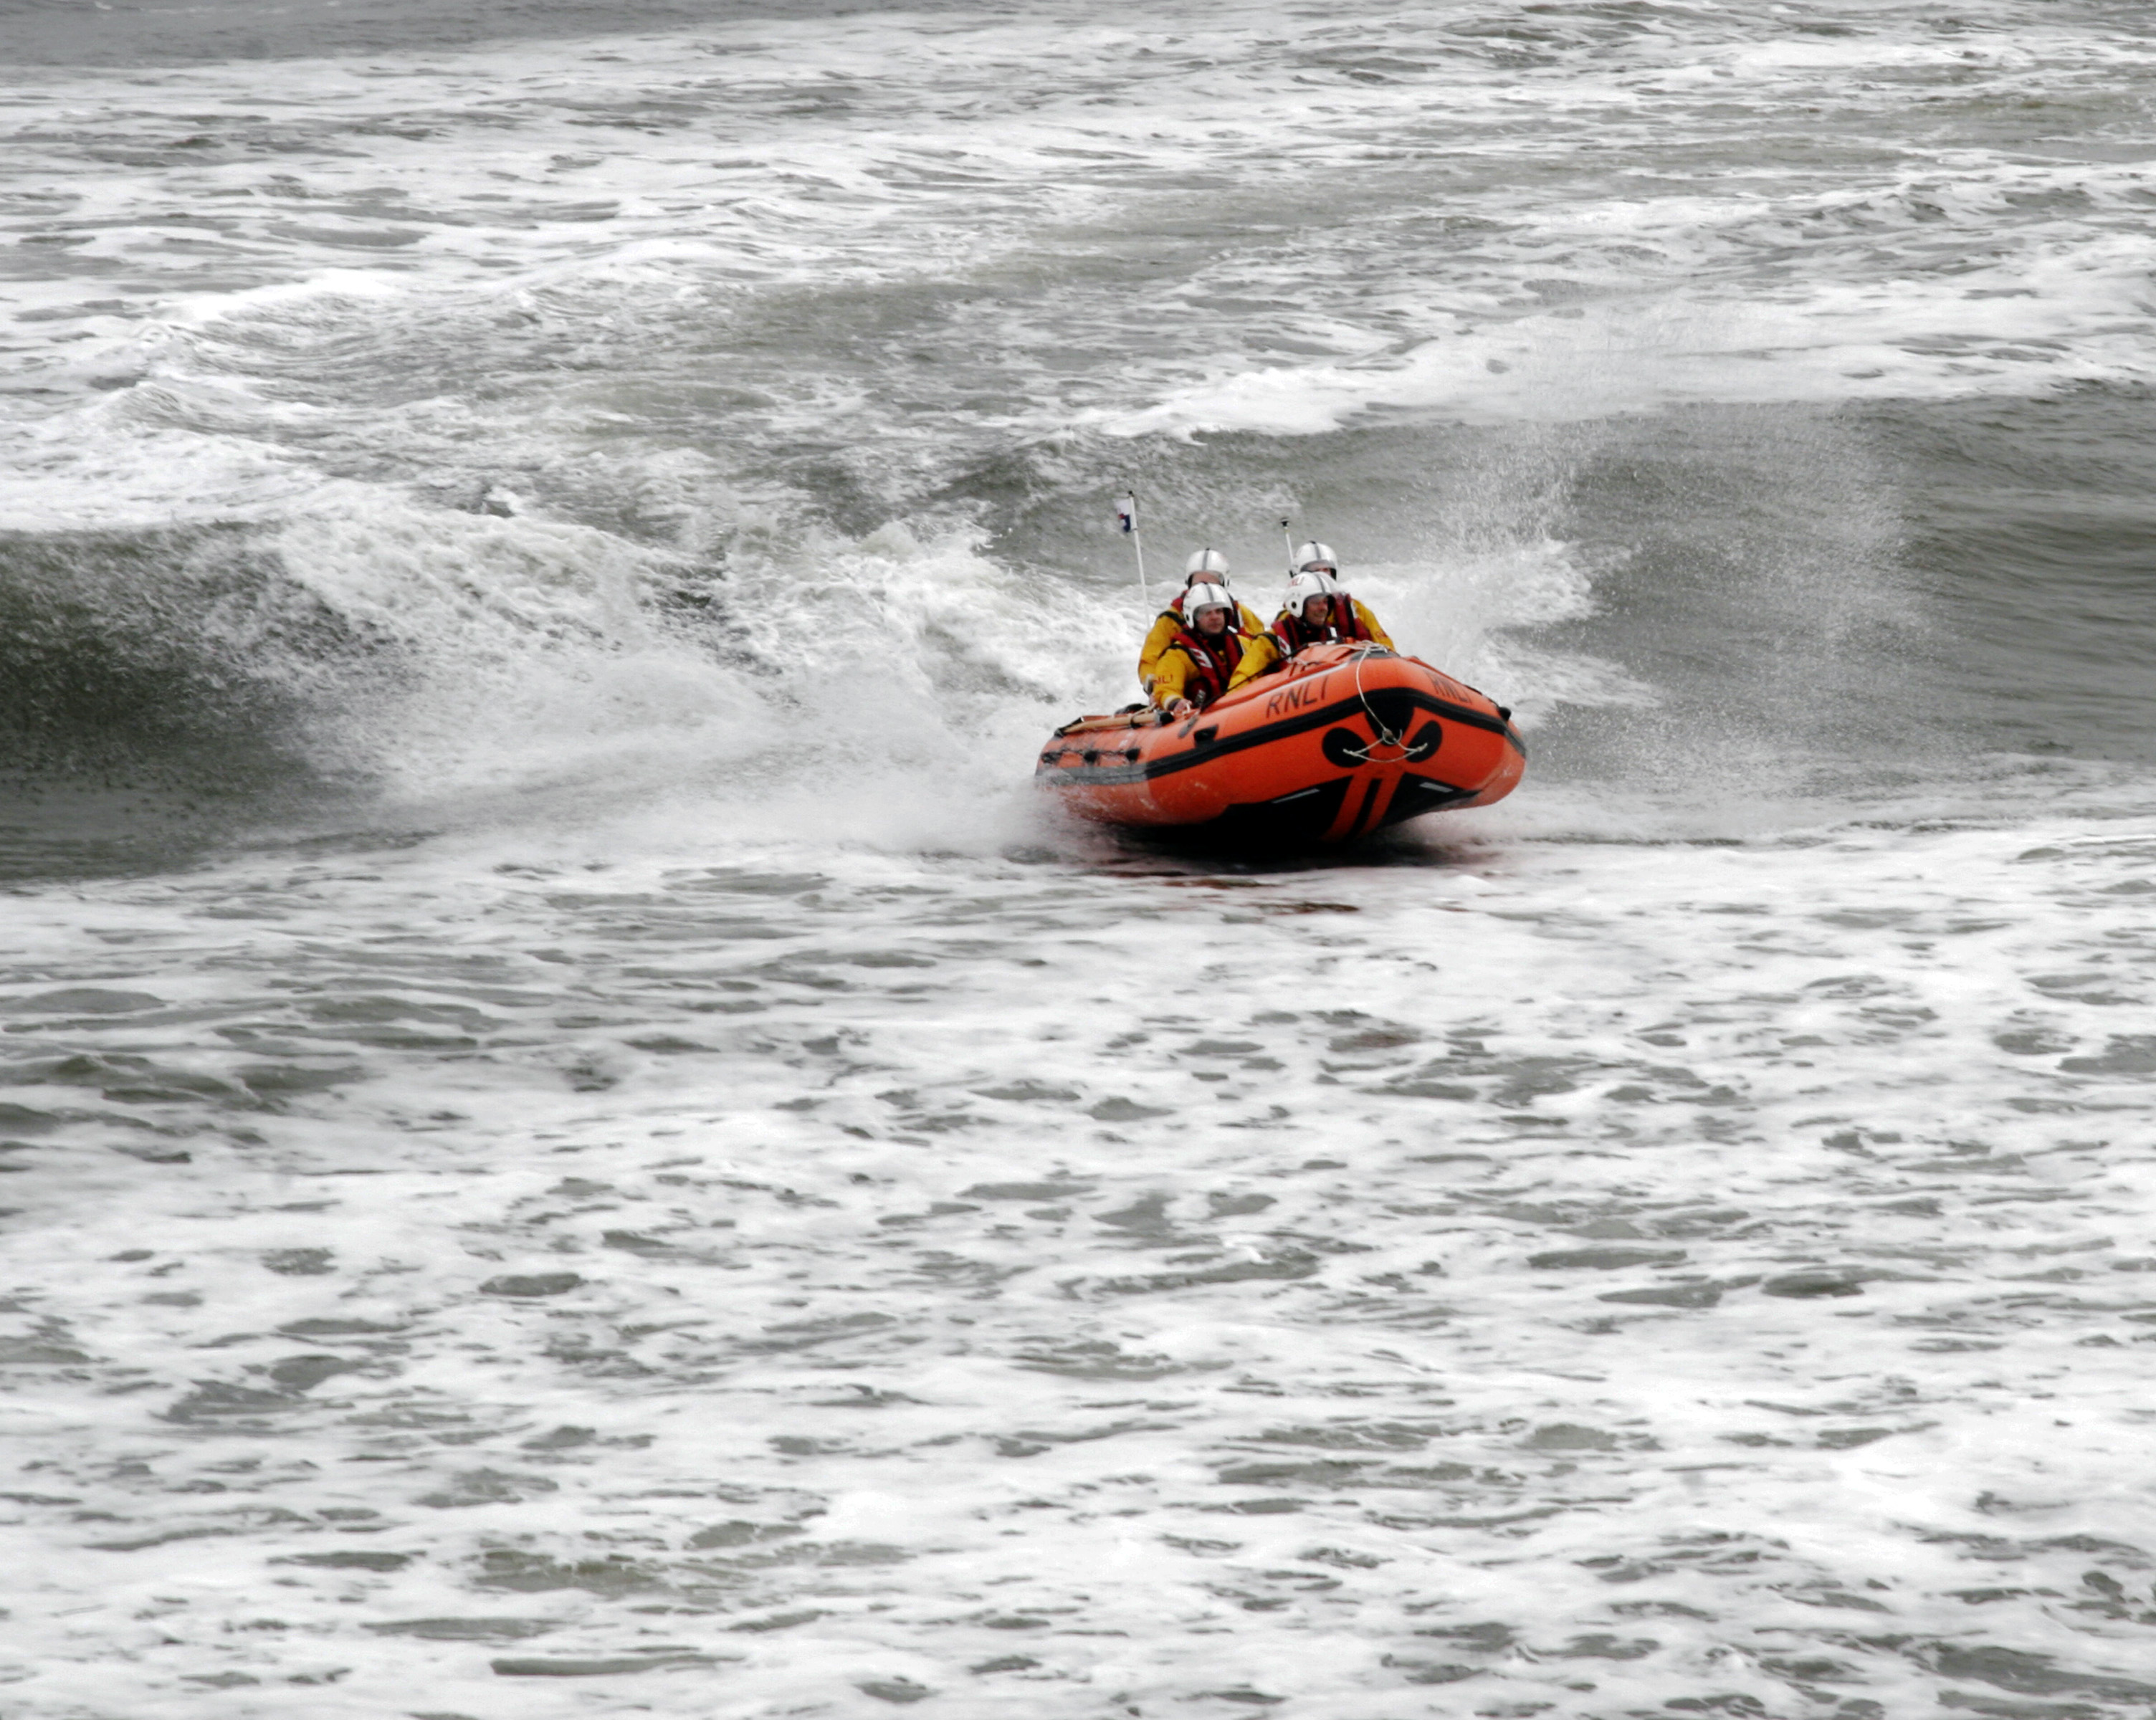 Inshore Lifeboat launching from Cromer beach.